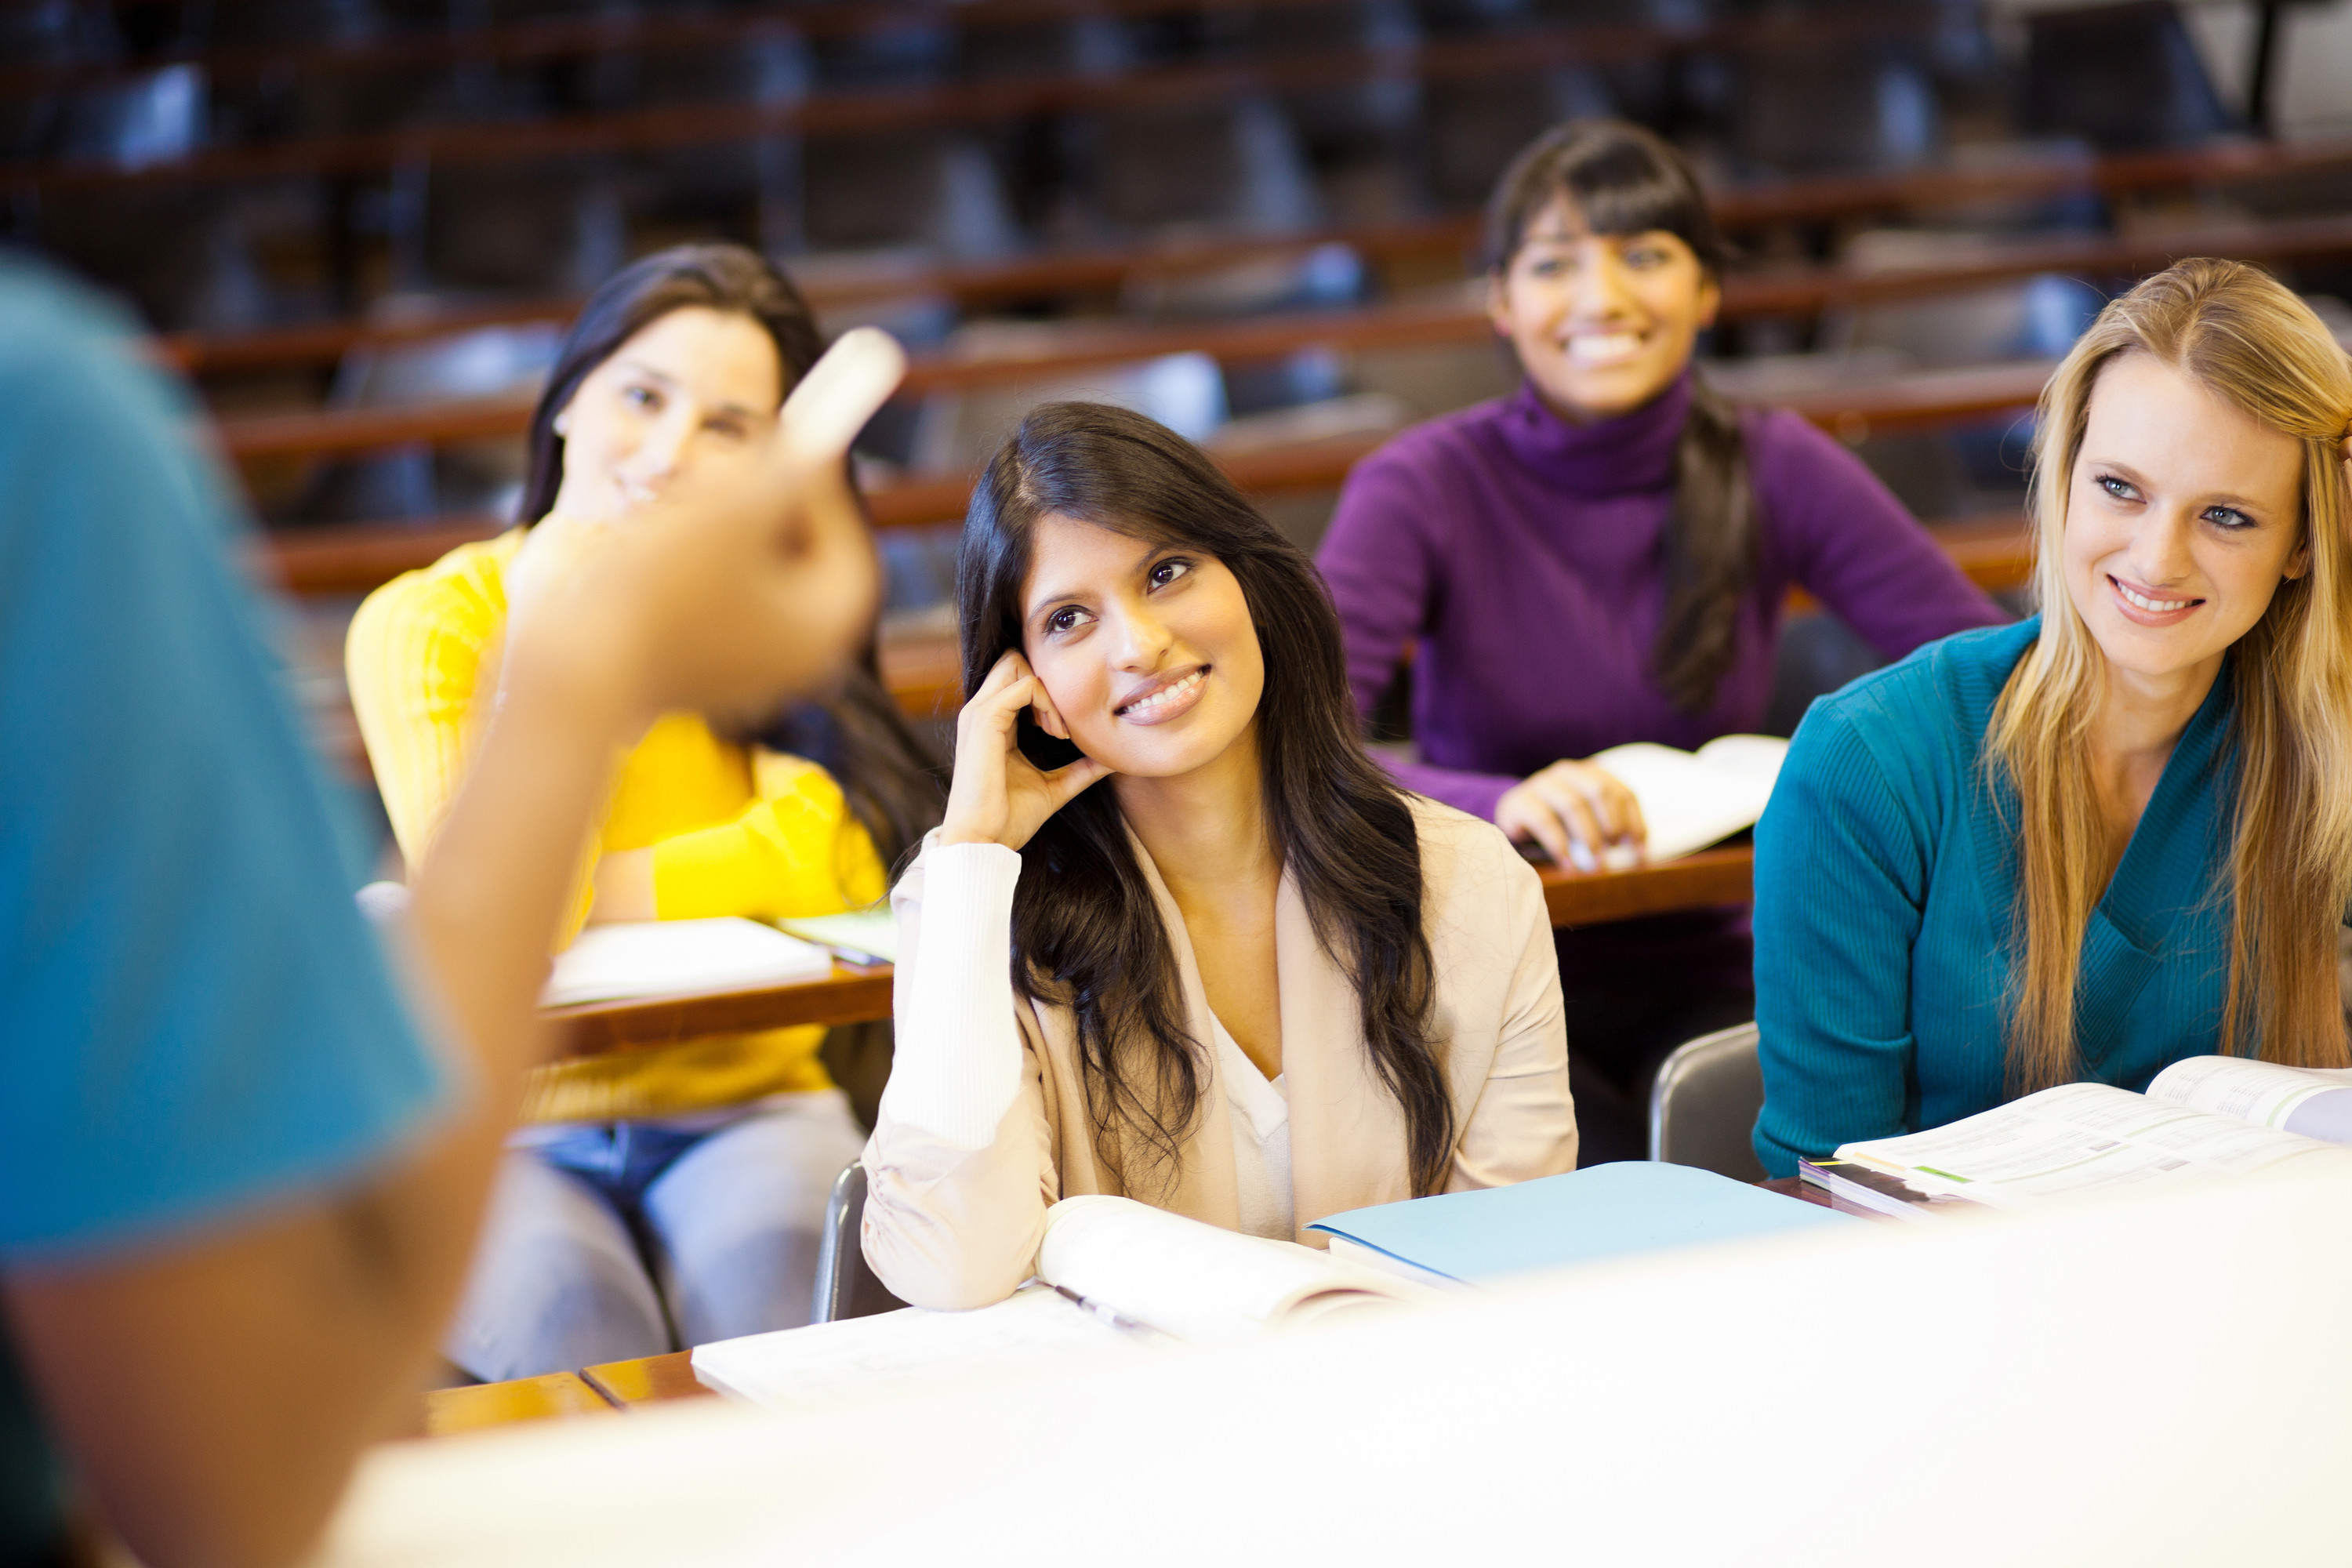 four year college course essay Resources and information to support k–12 and higher education professionals in helping students prepare for college and career.